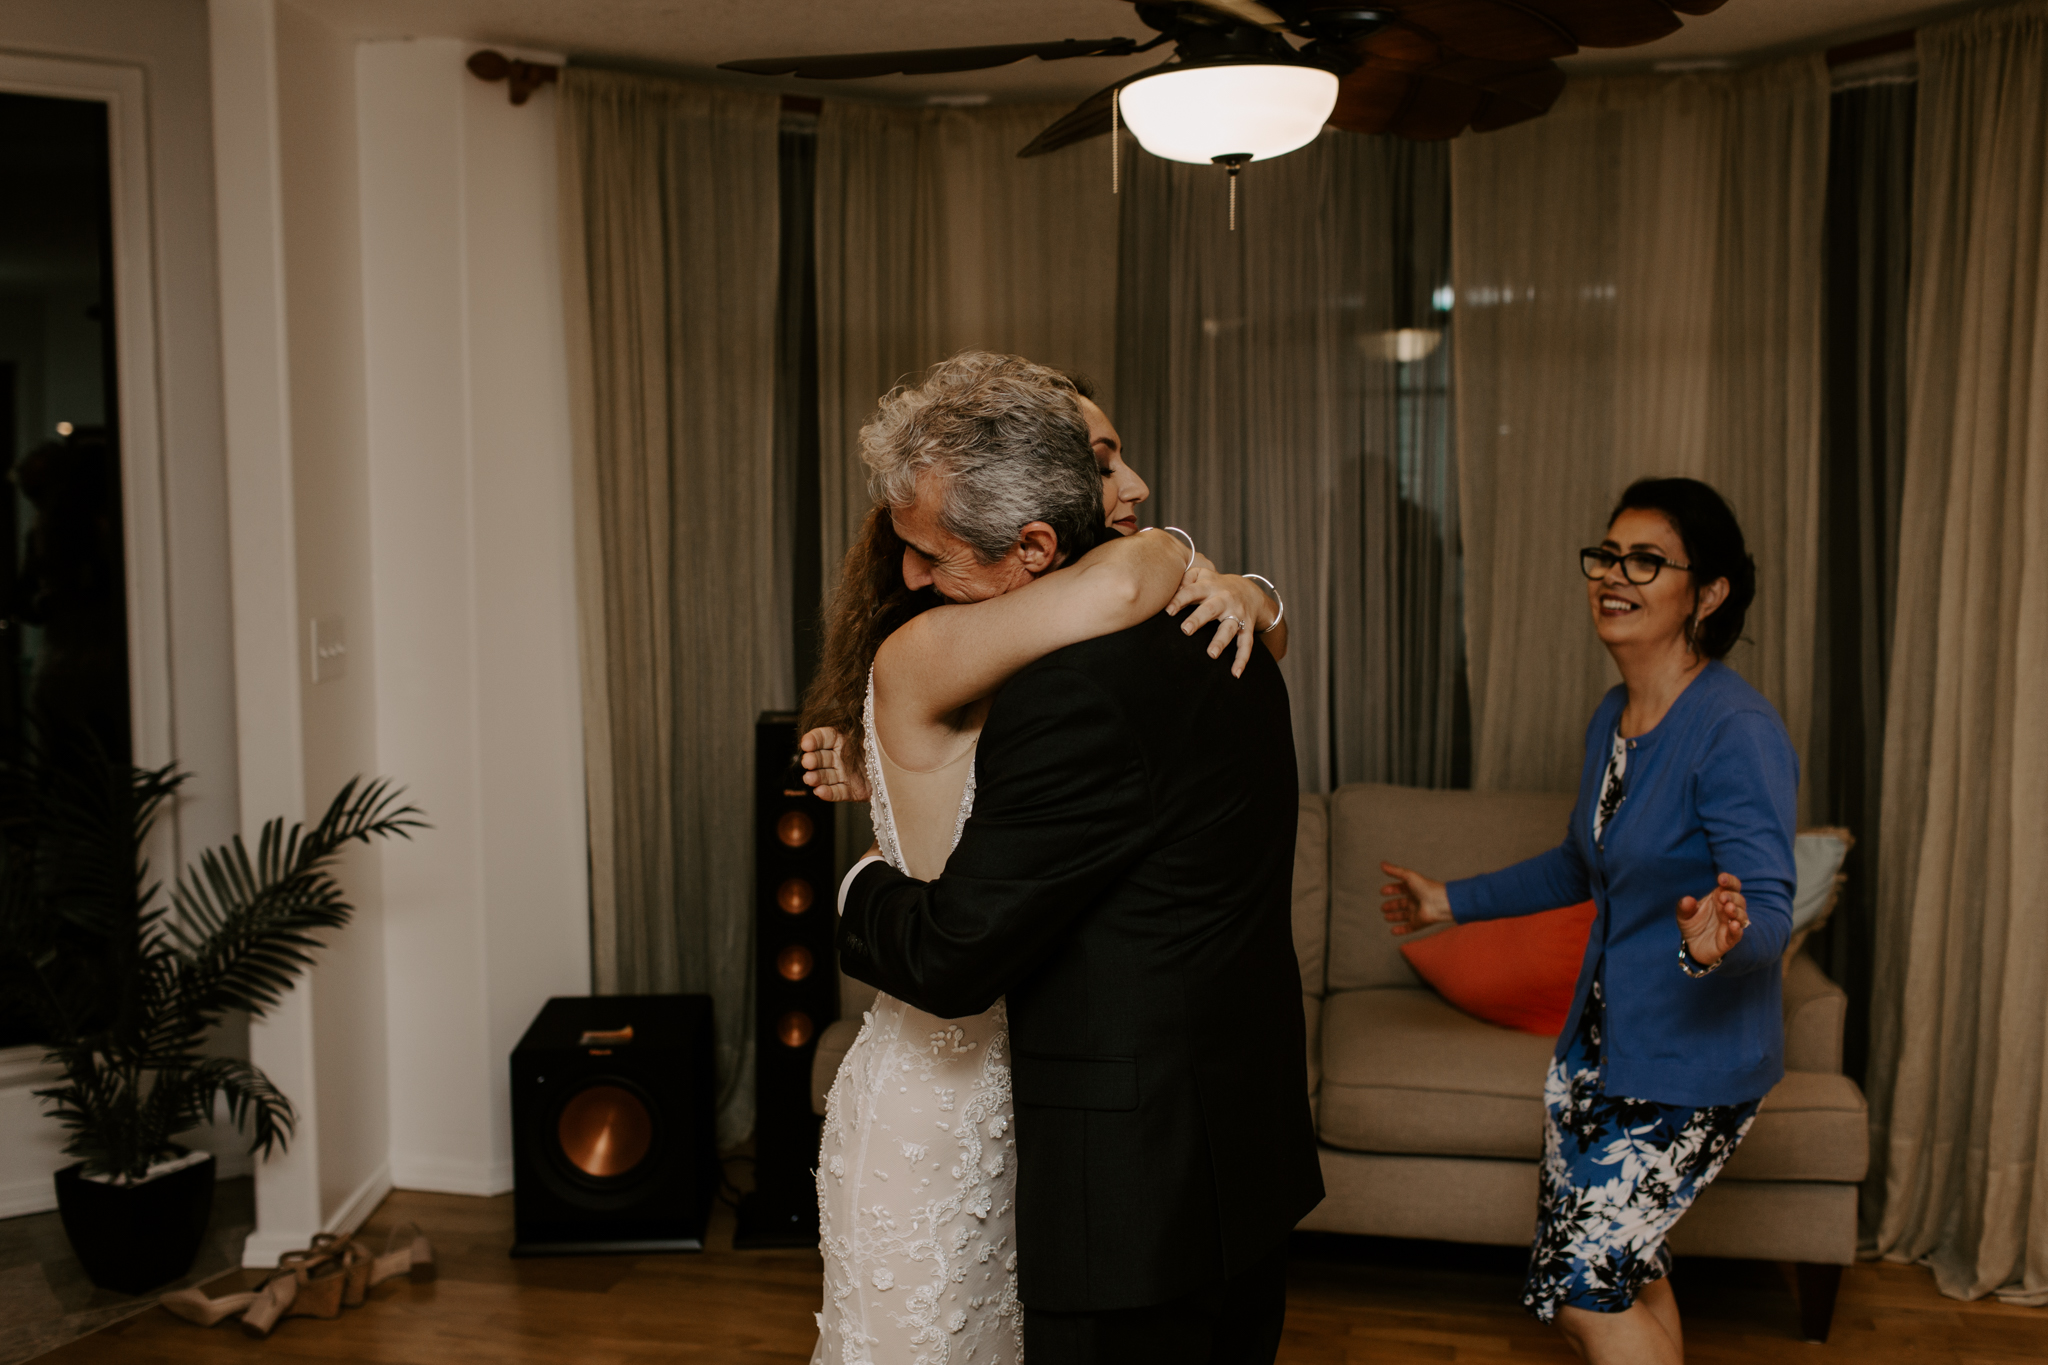 Parents dancing with the bride